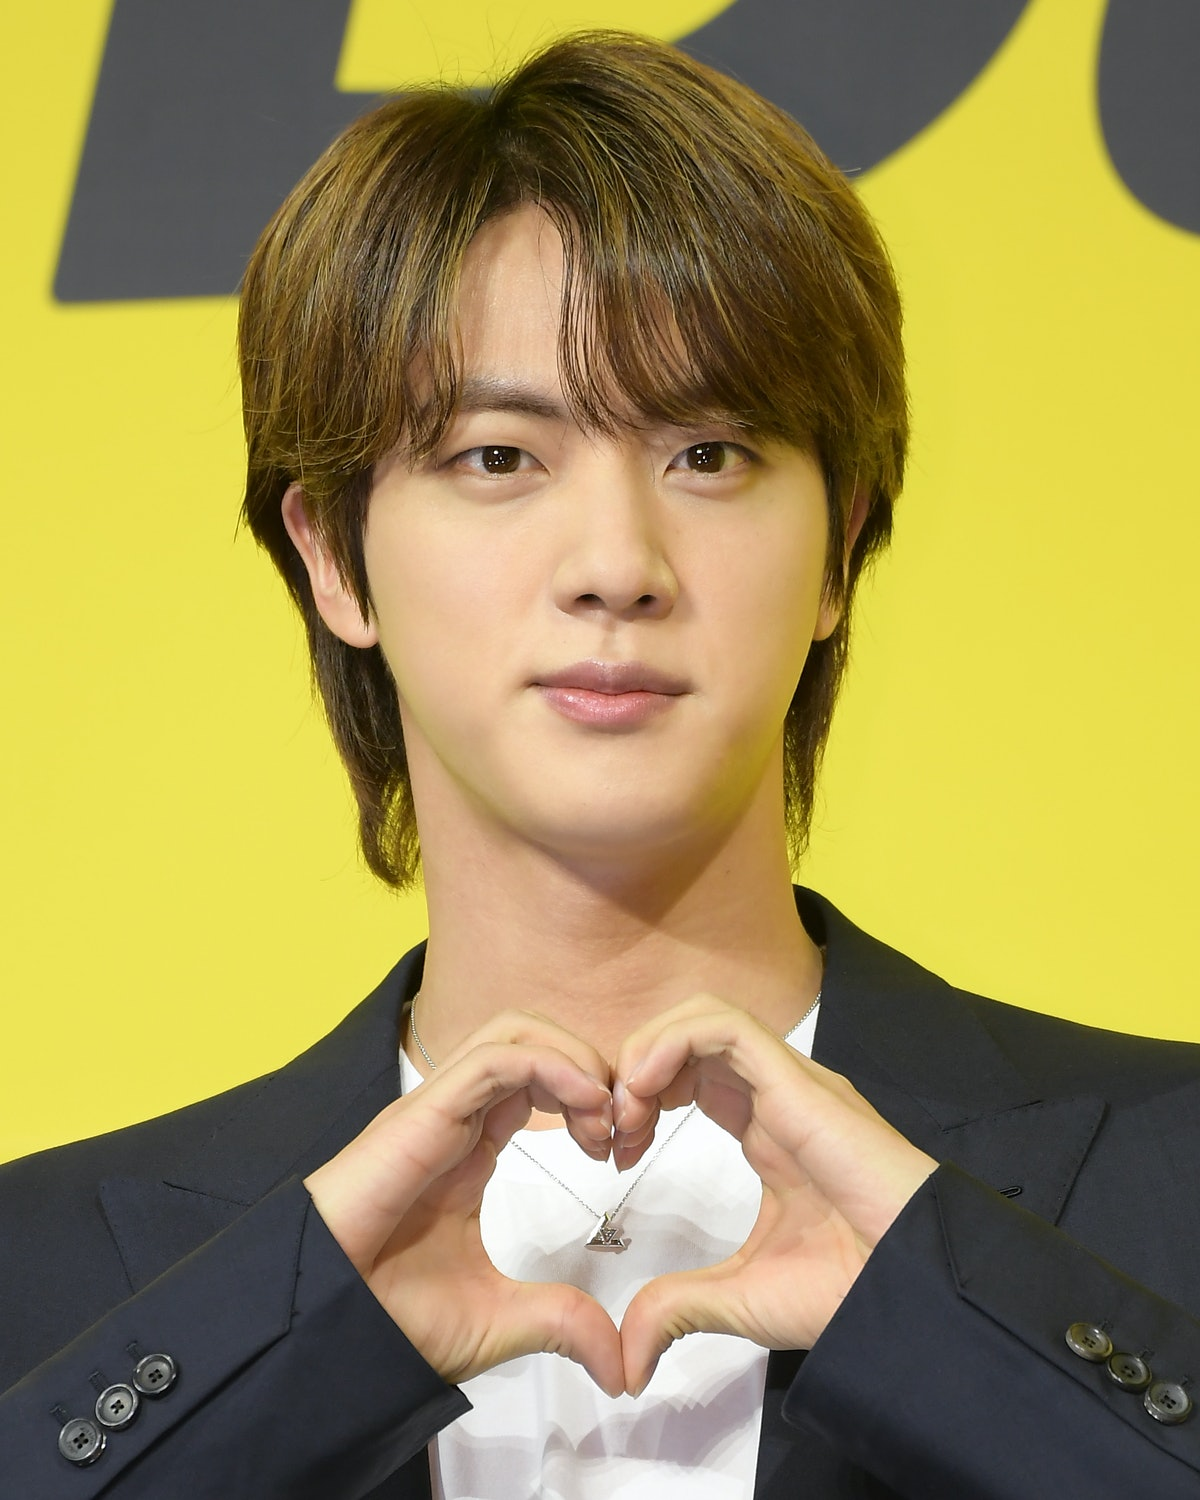 SEOUL, SOUTH KOREA - MAY 21: Jin of BTS attends a press conference for BTS's new digital single 'Butter' at Olympic Hall on May 21, 2021 in Seoul, South Korea. (Photo by The Chosunilbo JNS/Imazins via Getty Images)